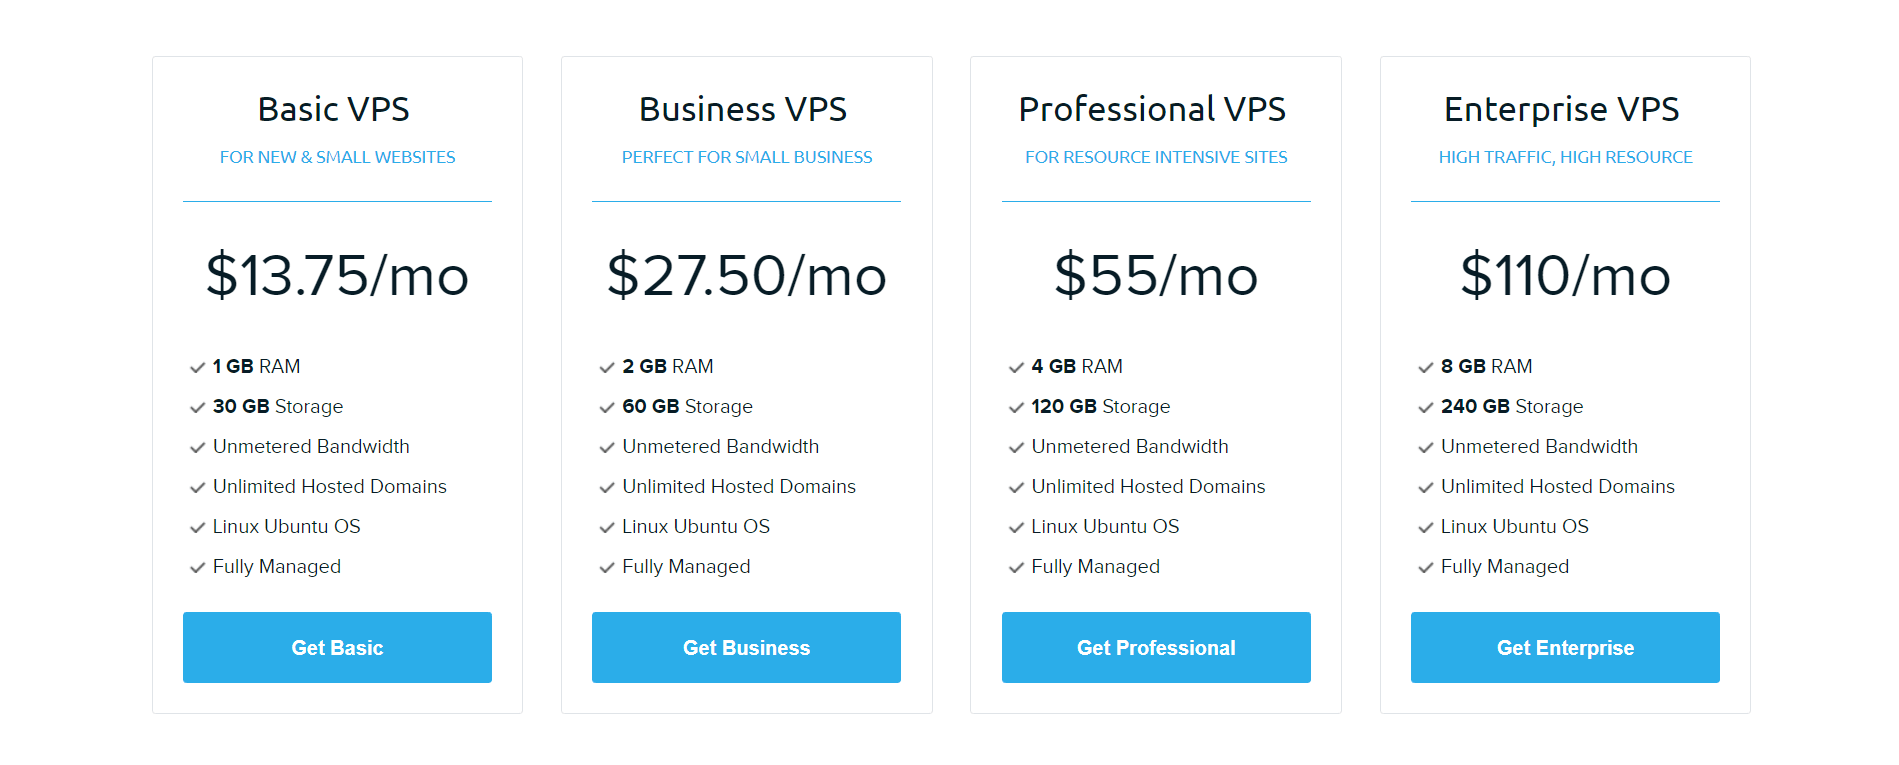 VPS vs shared hosting usually means a price increase